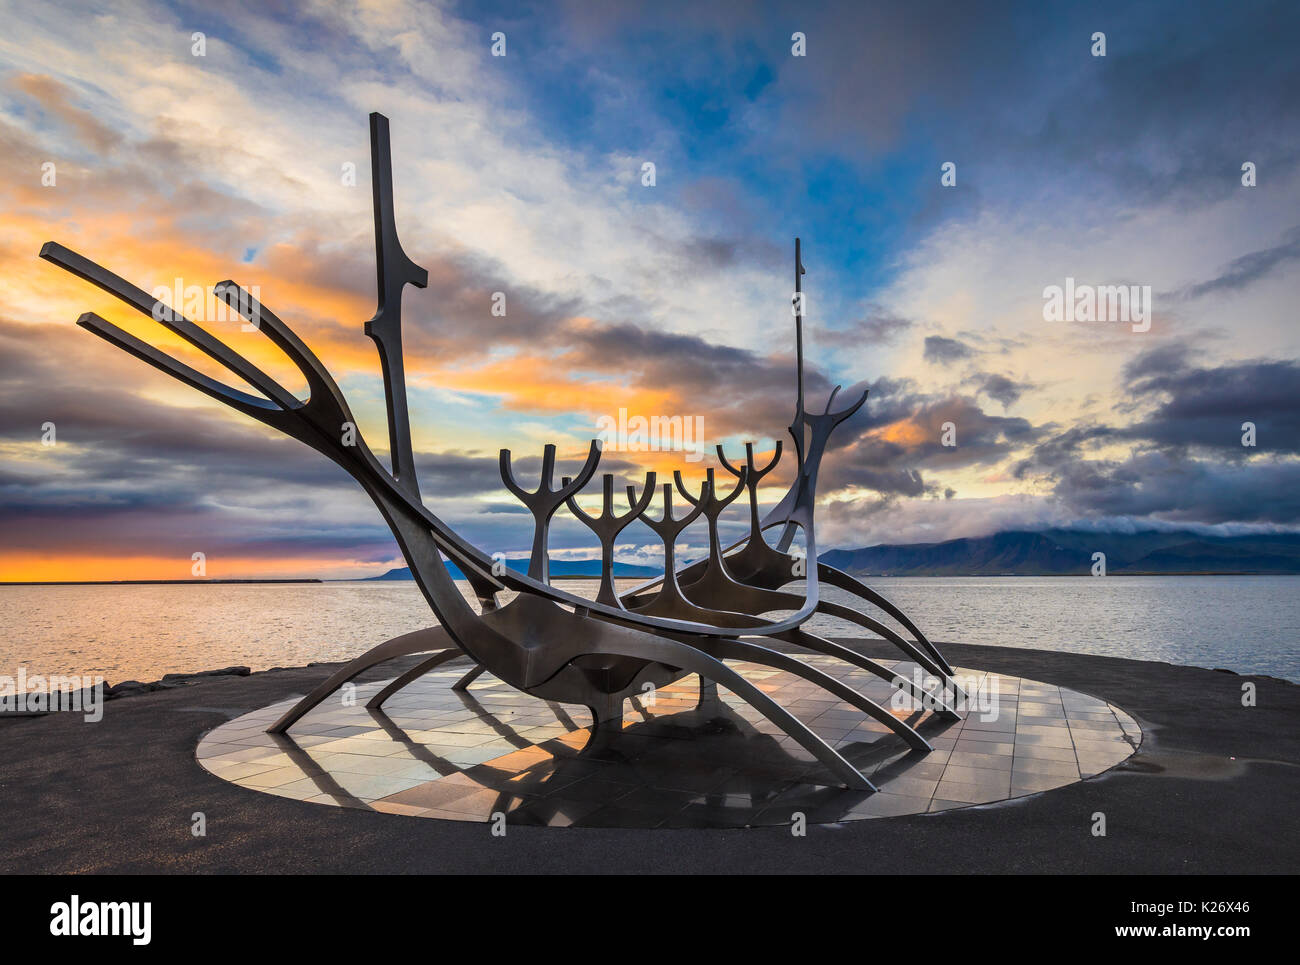 Sun Voyager is a sculpture by Jón Gunnar Árnason, located in Reykjavík, Iceland. Sun Voyager is a - Stock Image